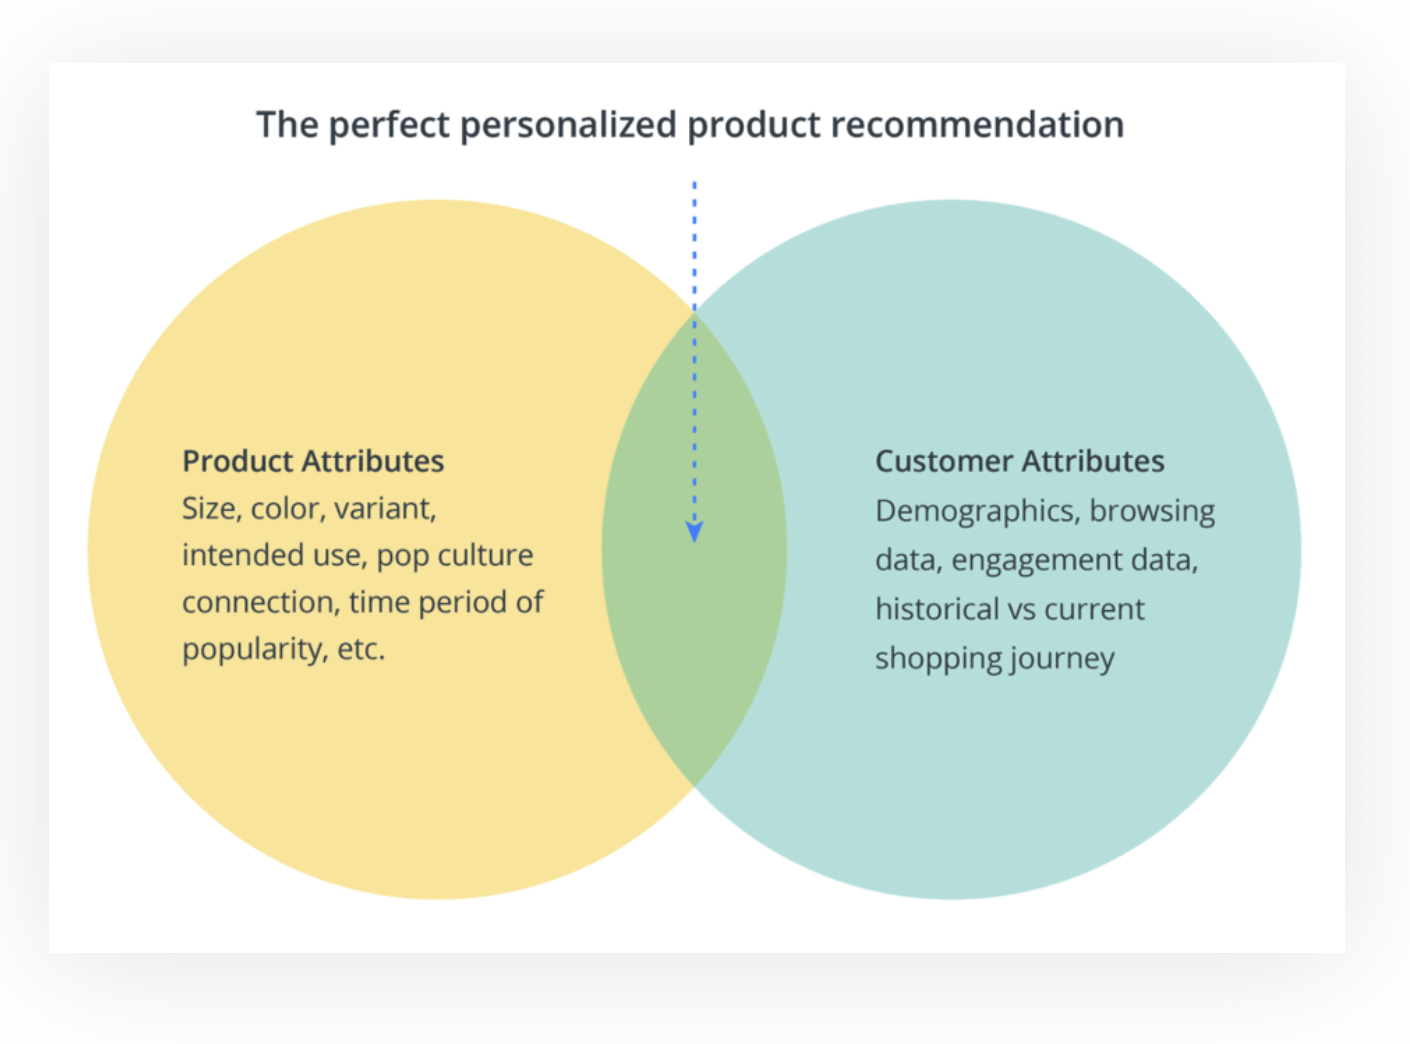 The perfect personalised product recommendation